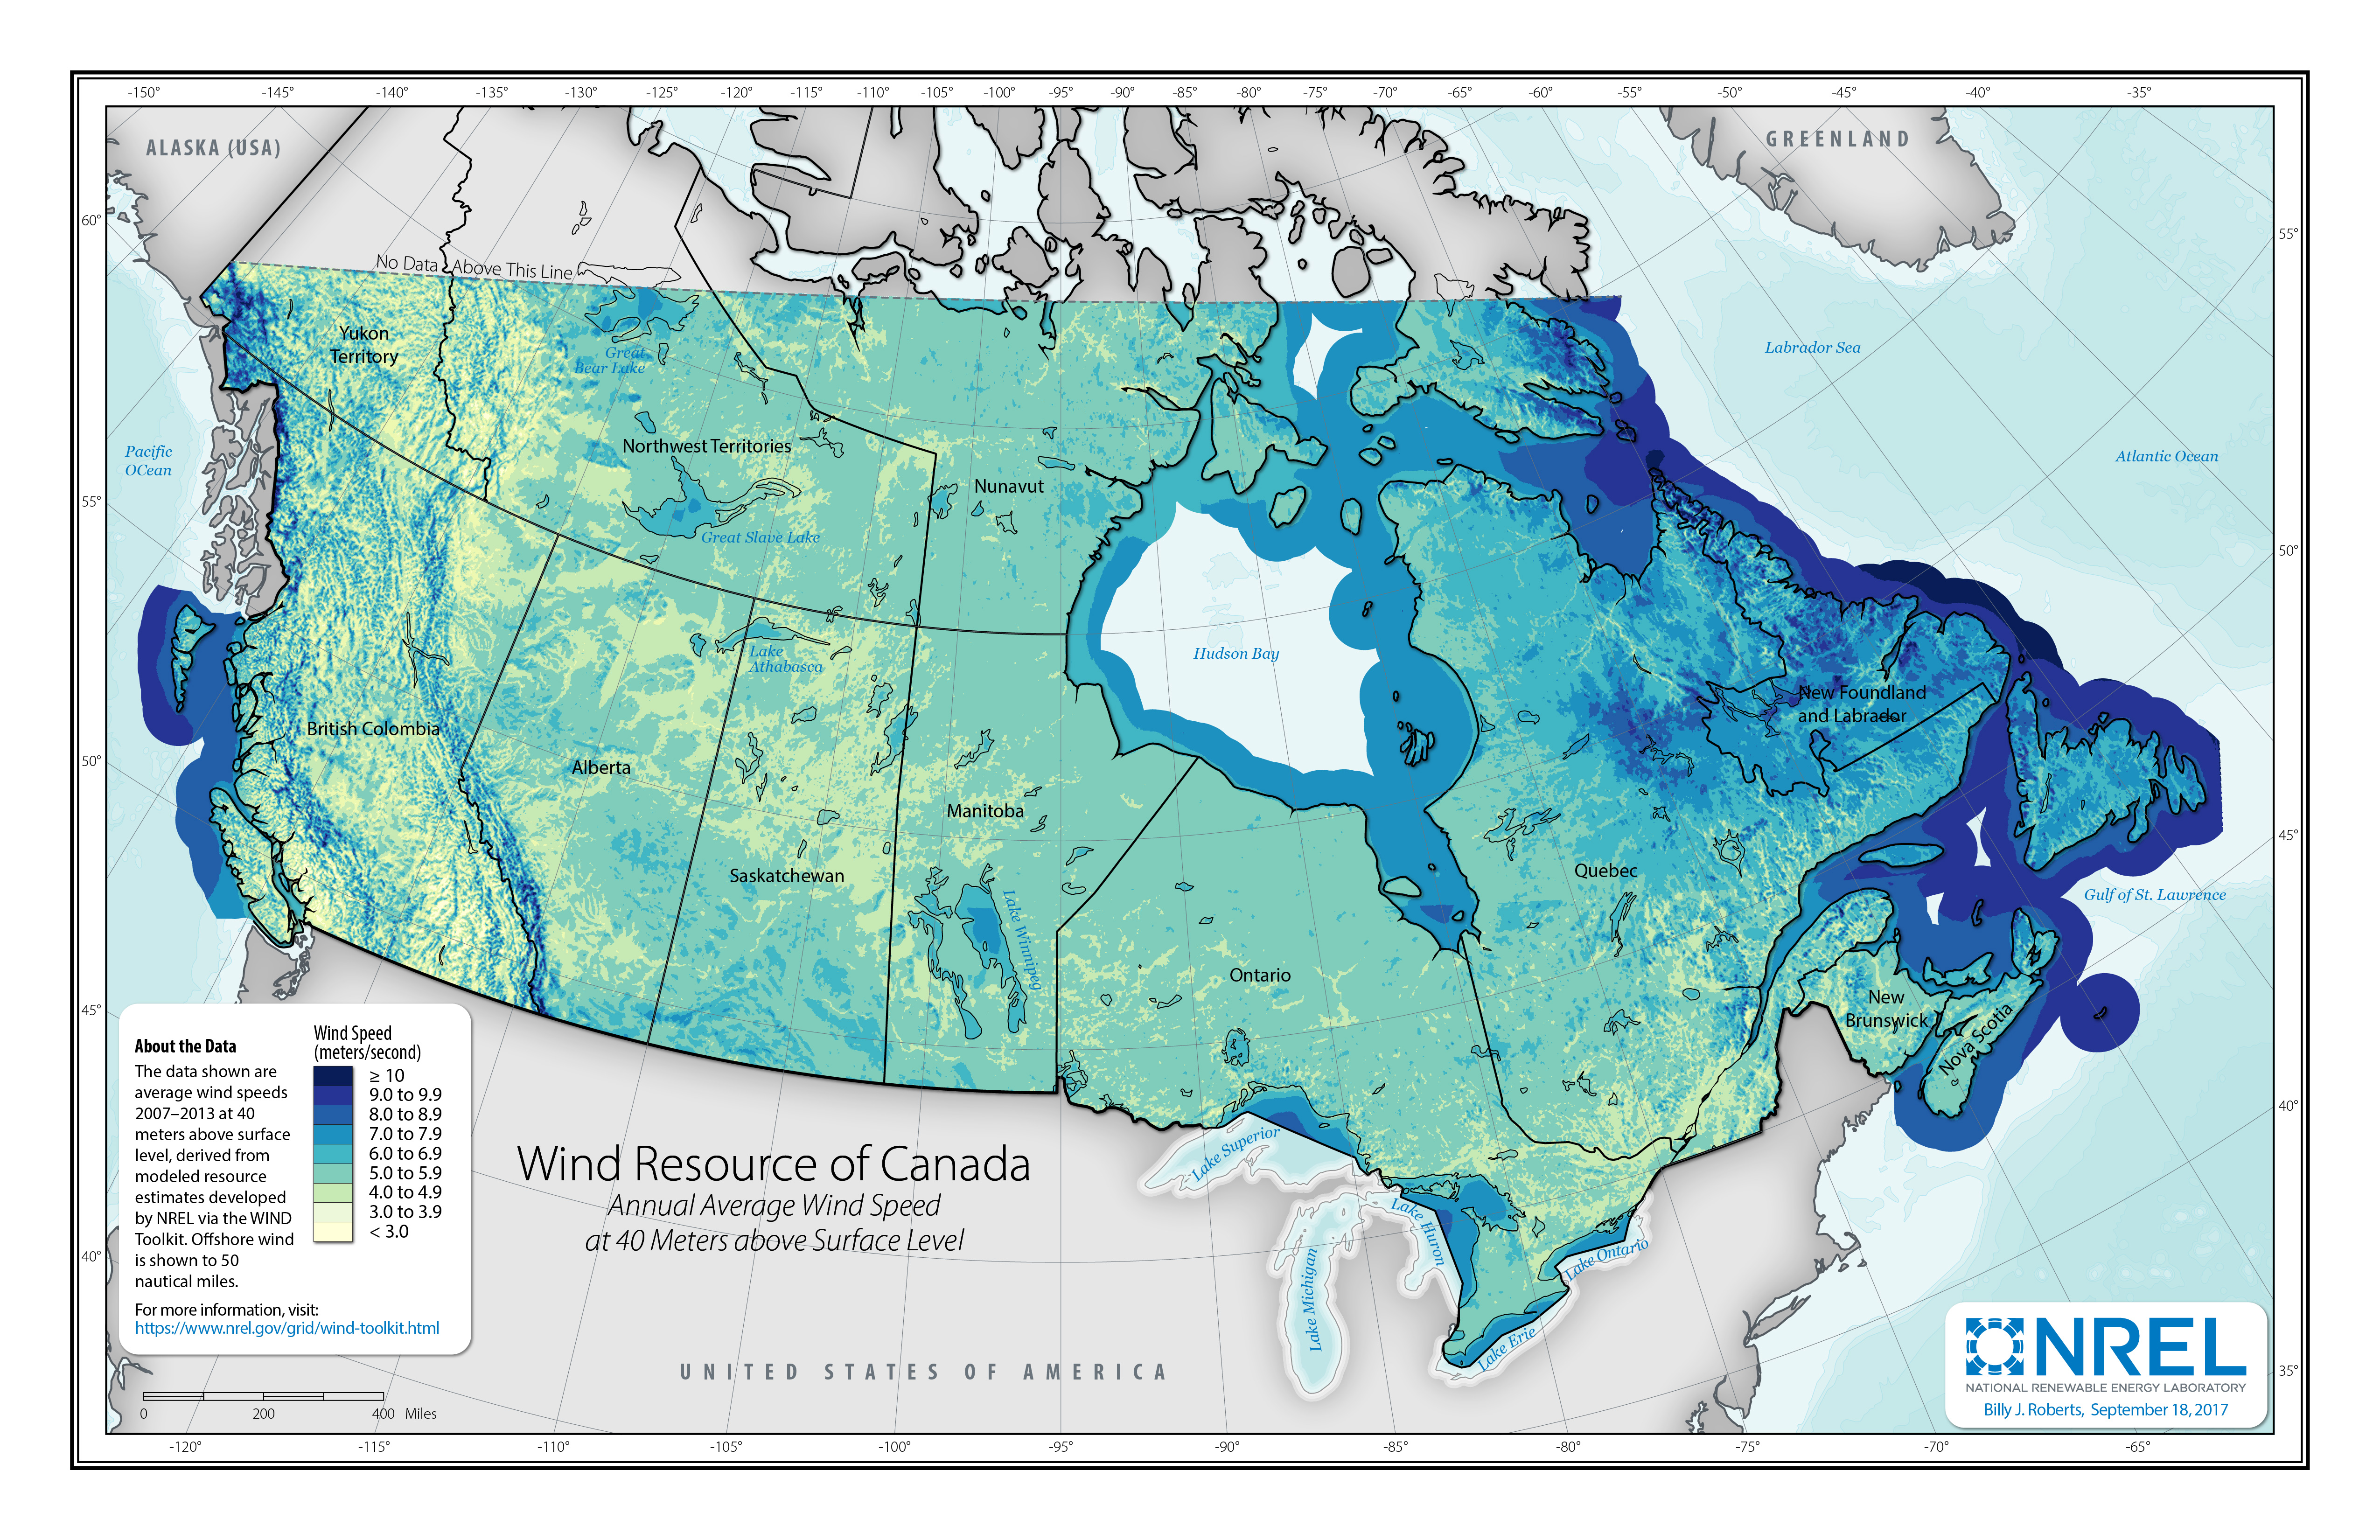 Wind Speed Map Canada Wind Resource Data, Tools, and Maps | Geospatial Data Science | NREL